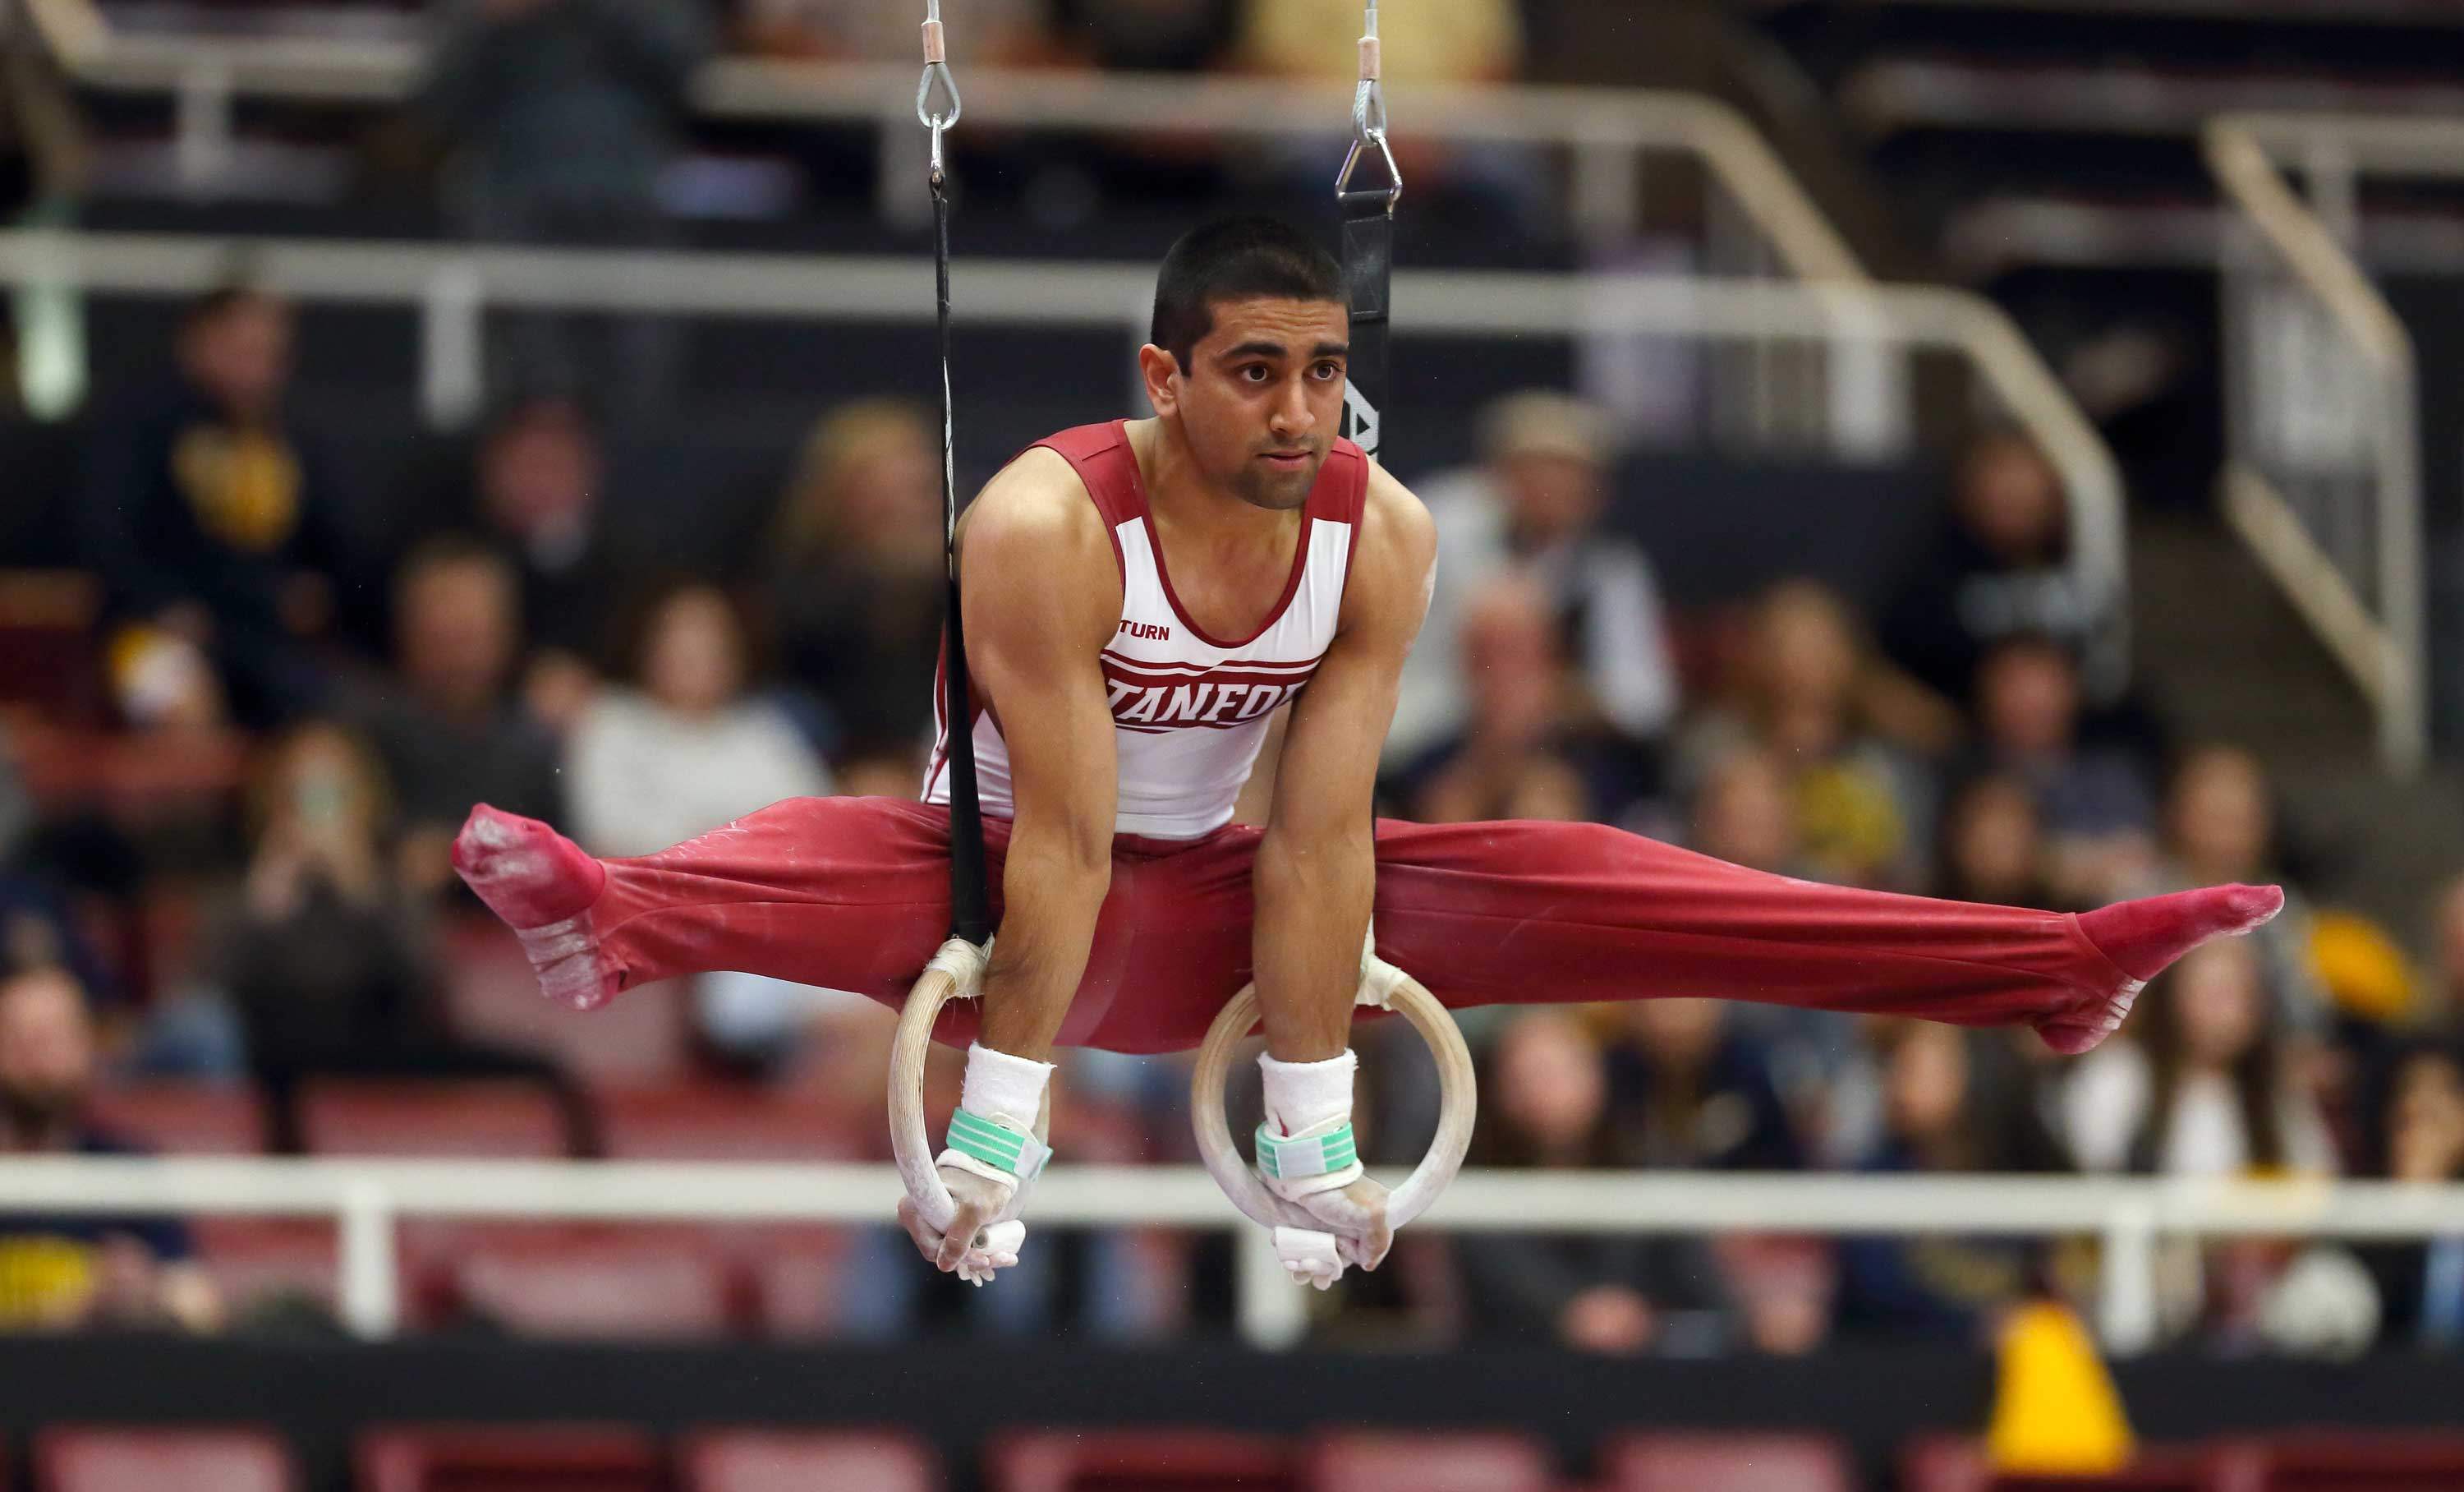 Stanford Men's gymnast Akash Modi competing in March 2014. (Hector Garcia-Molina/ISIPhotos)